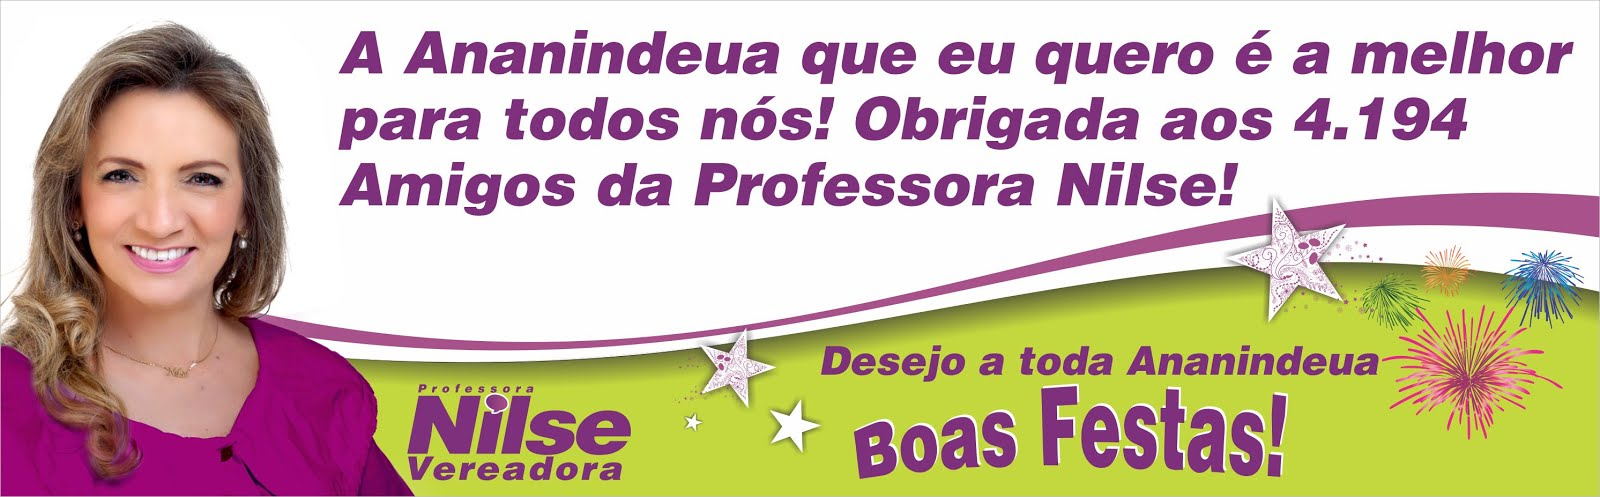 Professora Nilse